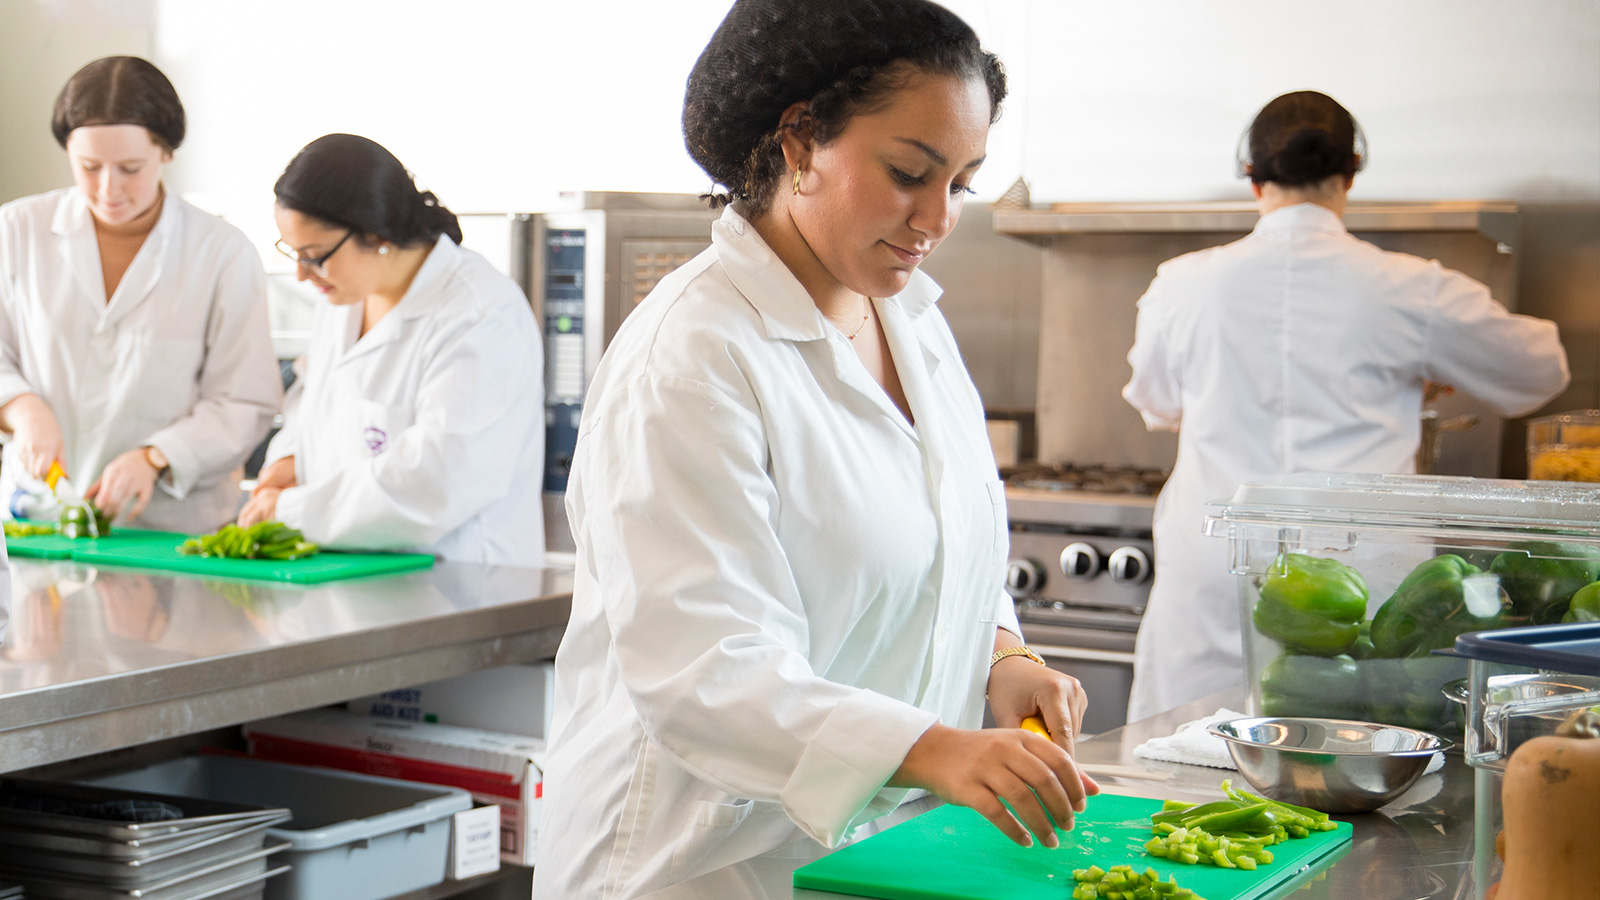 Students preparing food in commercial kitchen at Brescia